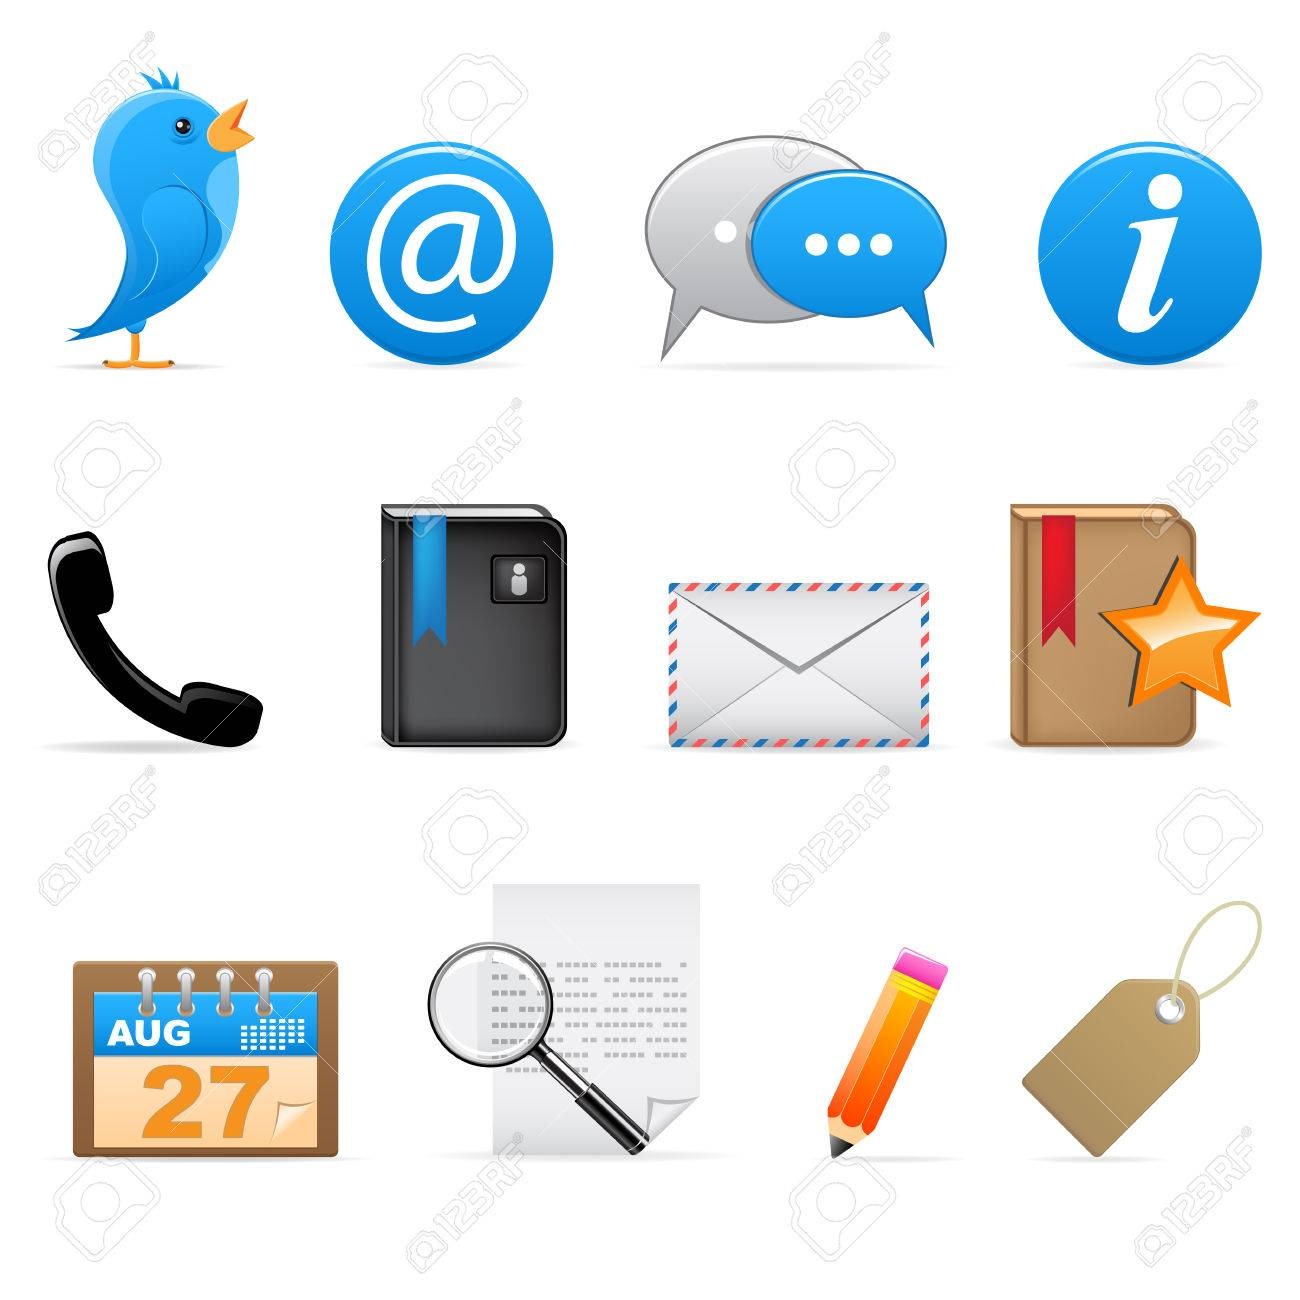 Social media icons Stock Vector - 6567358